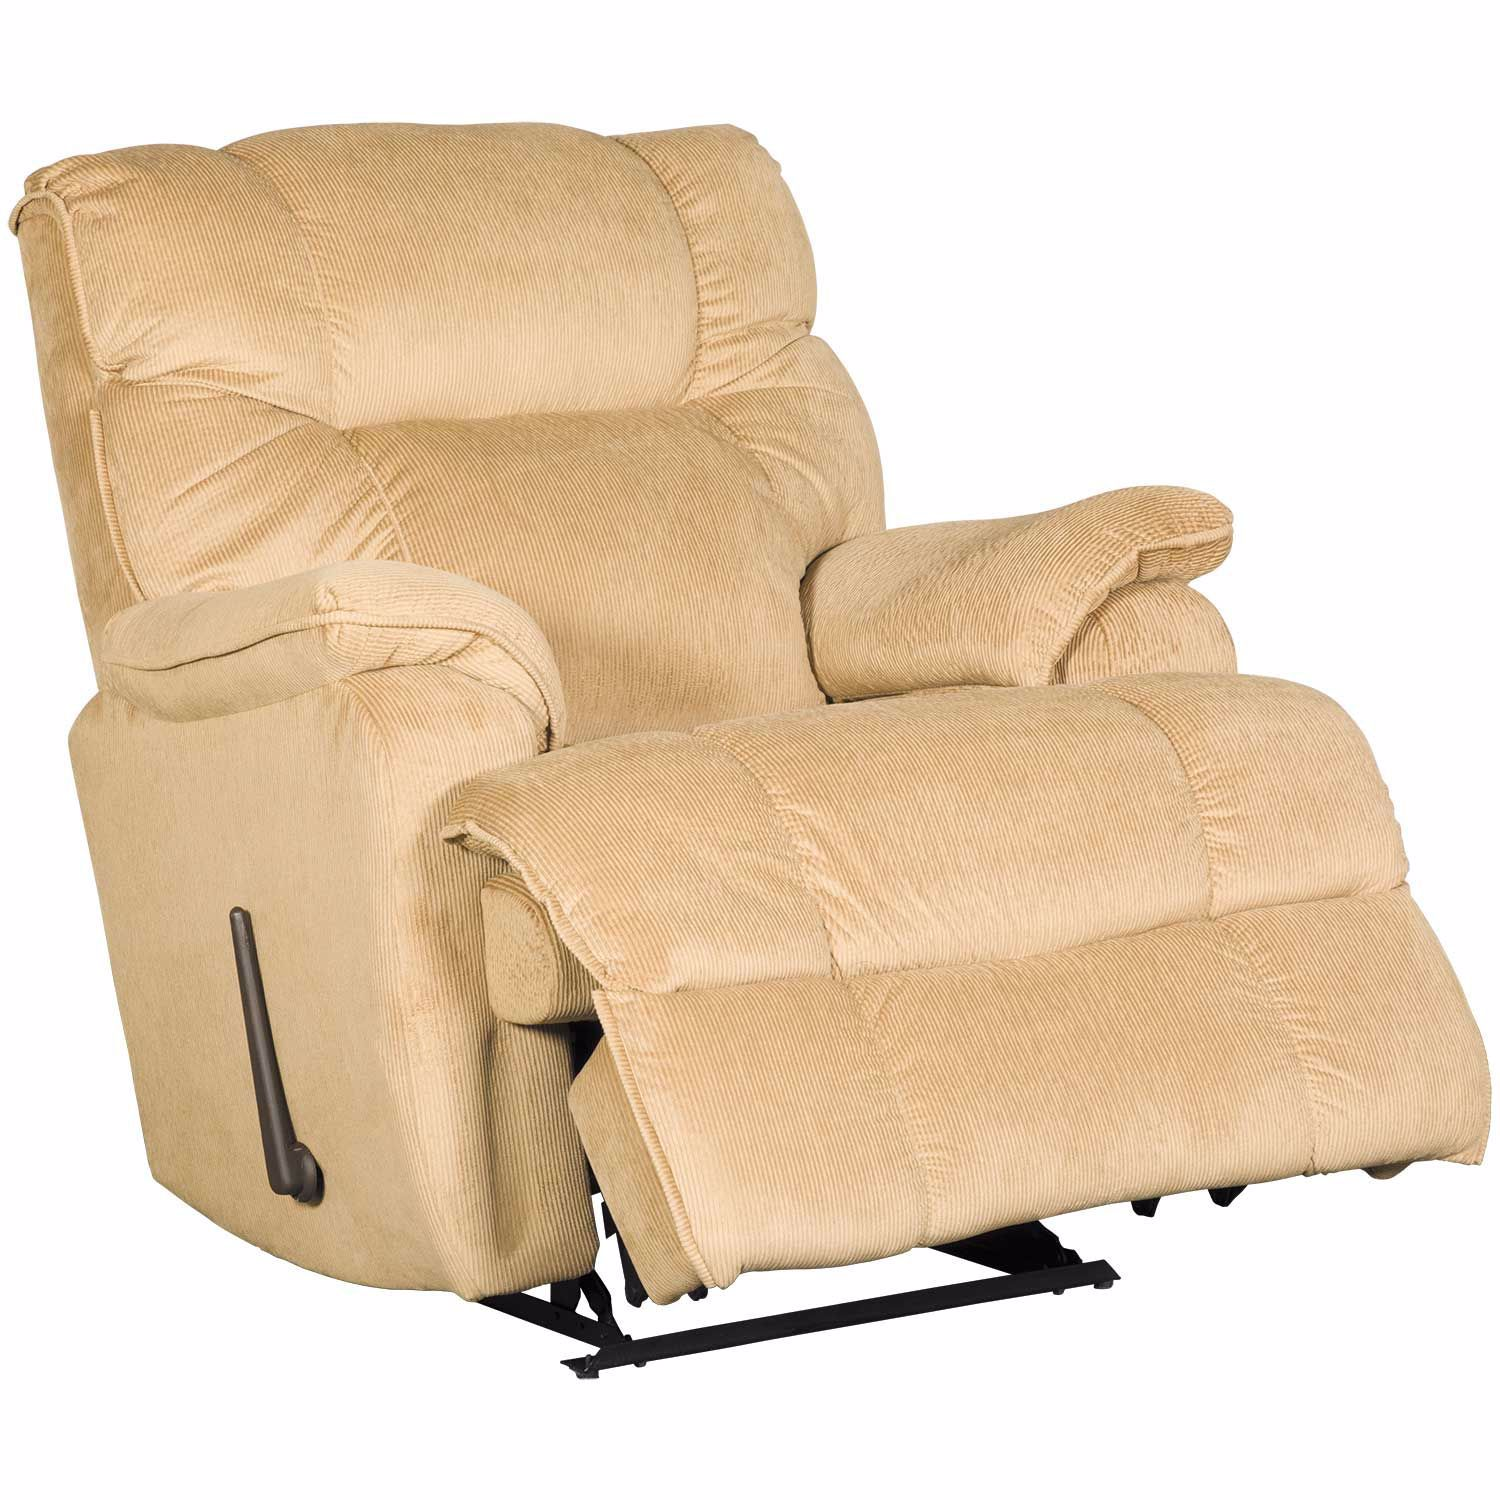 Picture of Rancho Tan Comfort King Wall Saver Recliner